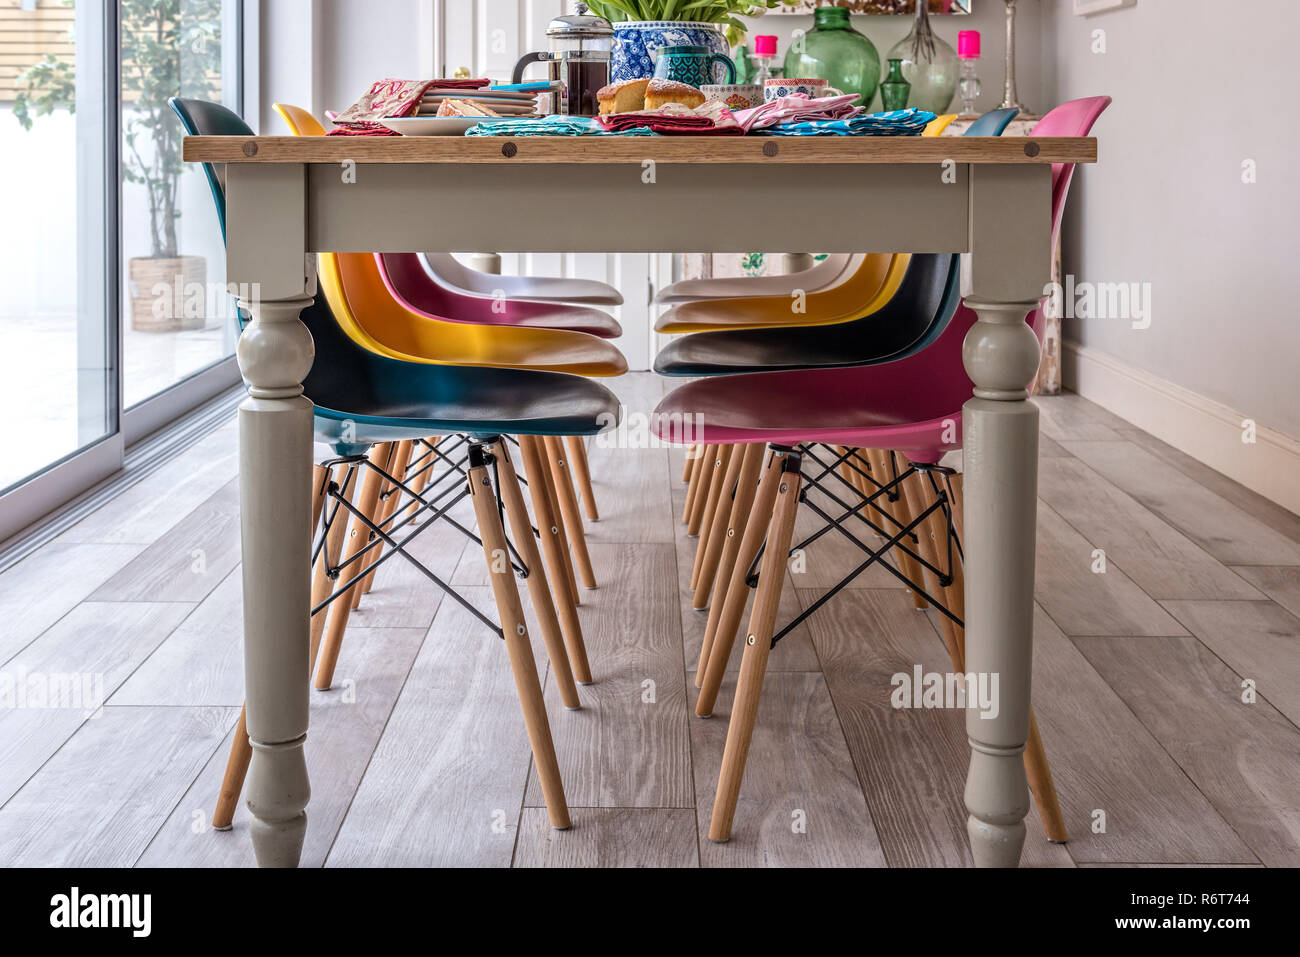 Sedia Eames Verde Eames Chairs Immagini Eames Chairs Fotos Stock Alamy